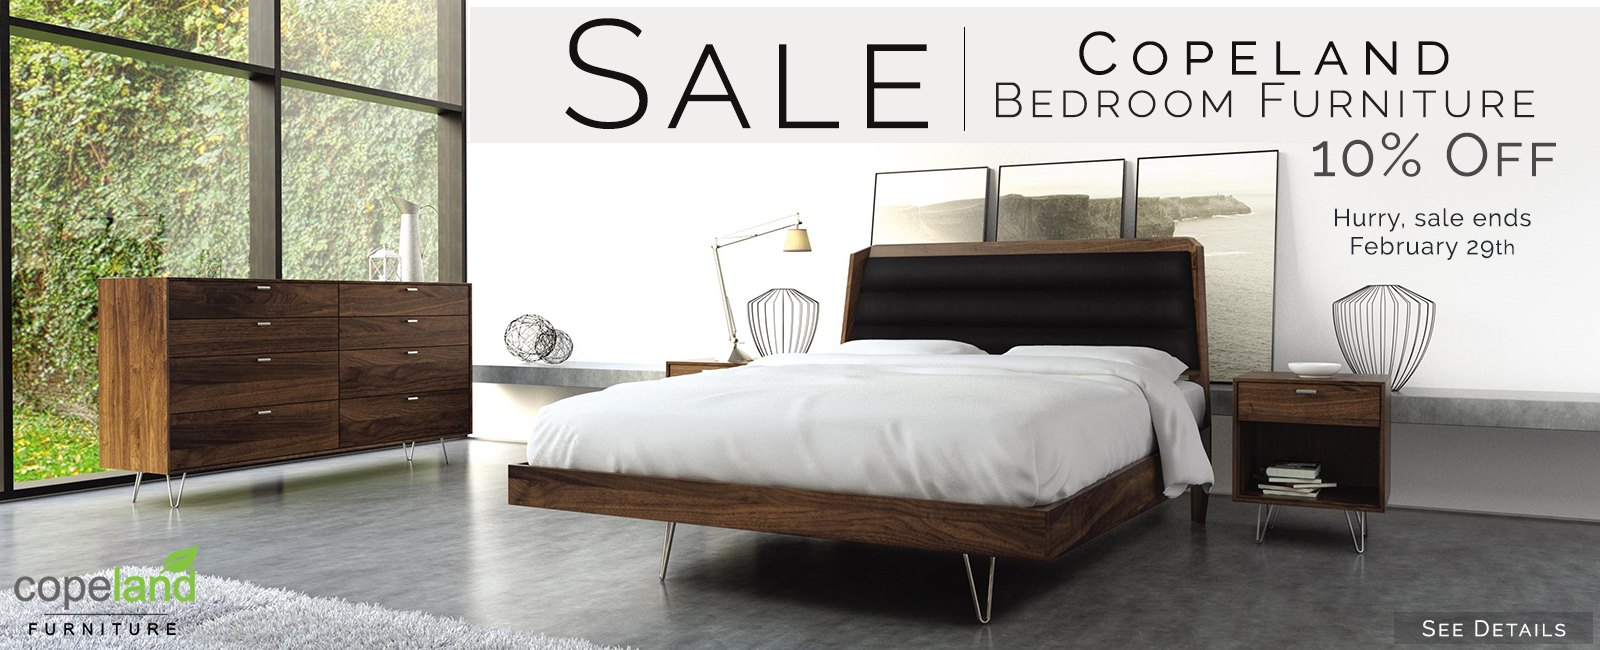 Copeland Bedroom Sale